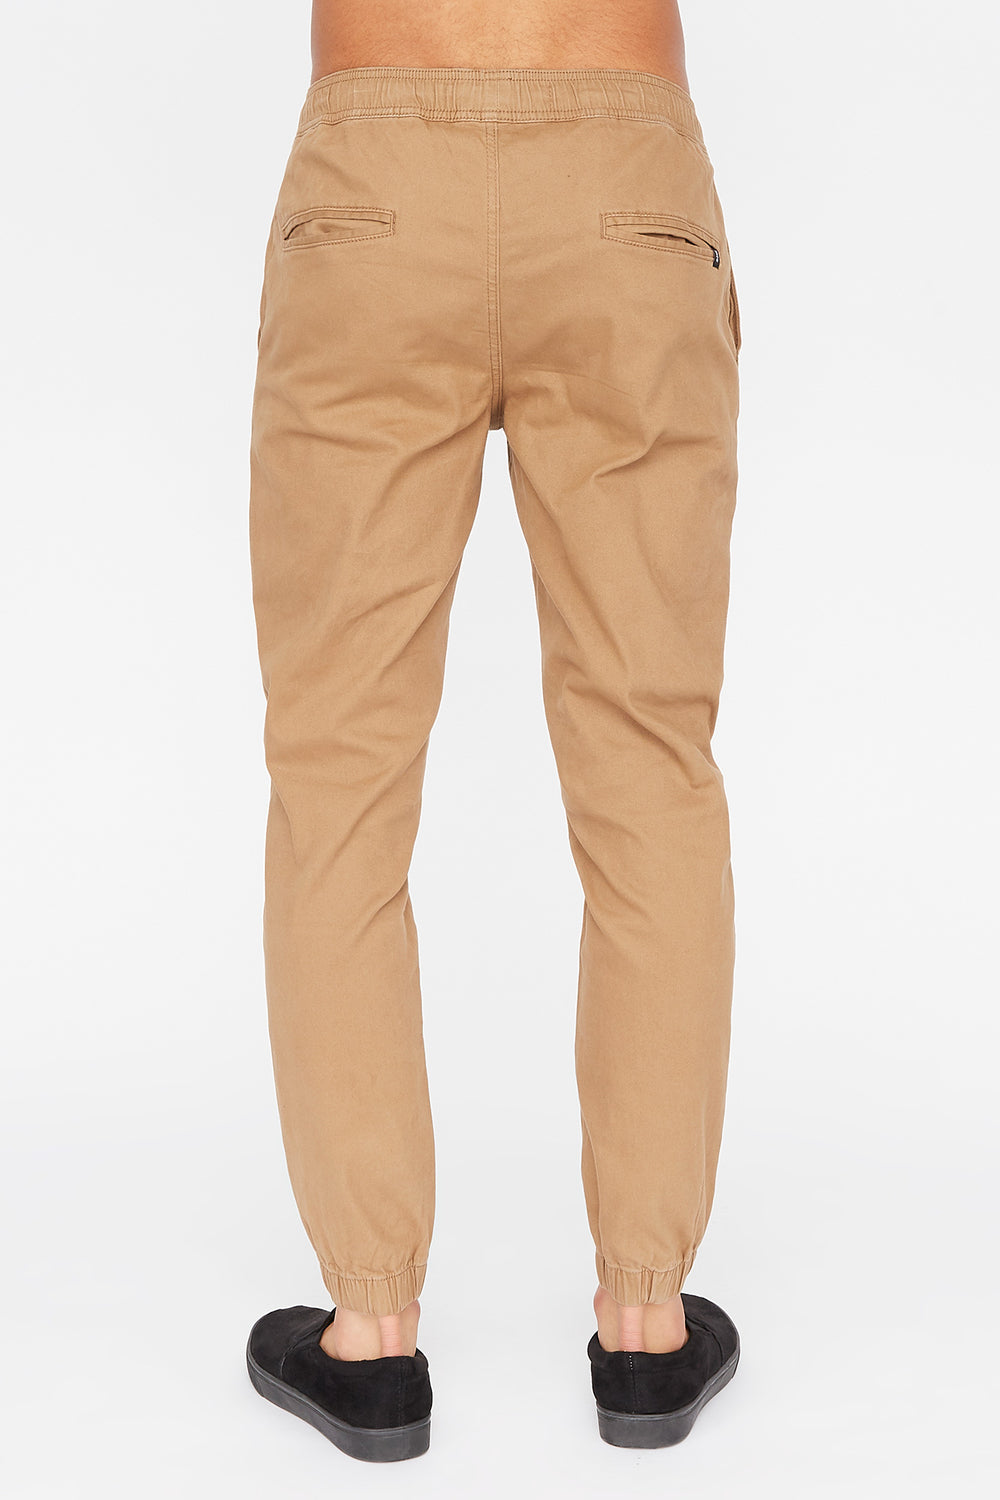 West49 Mens Jogger Camel